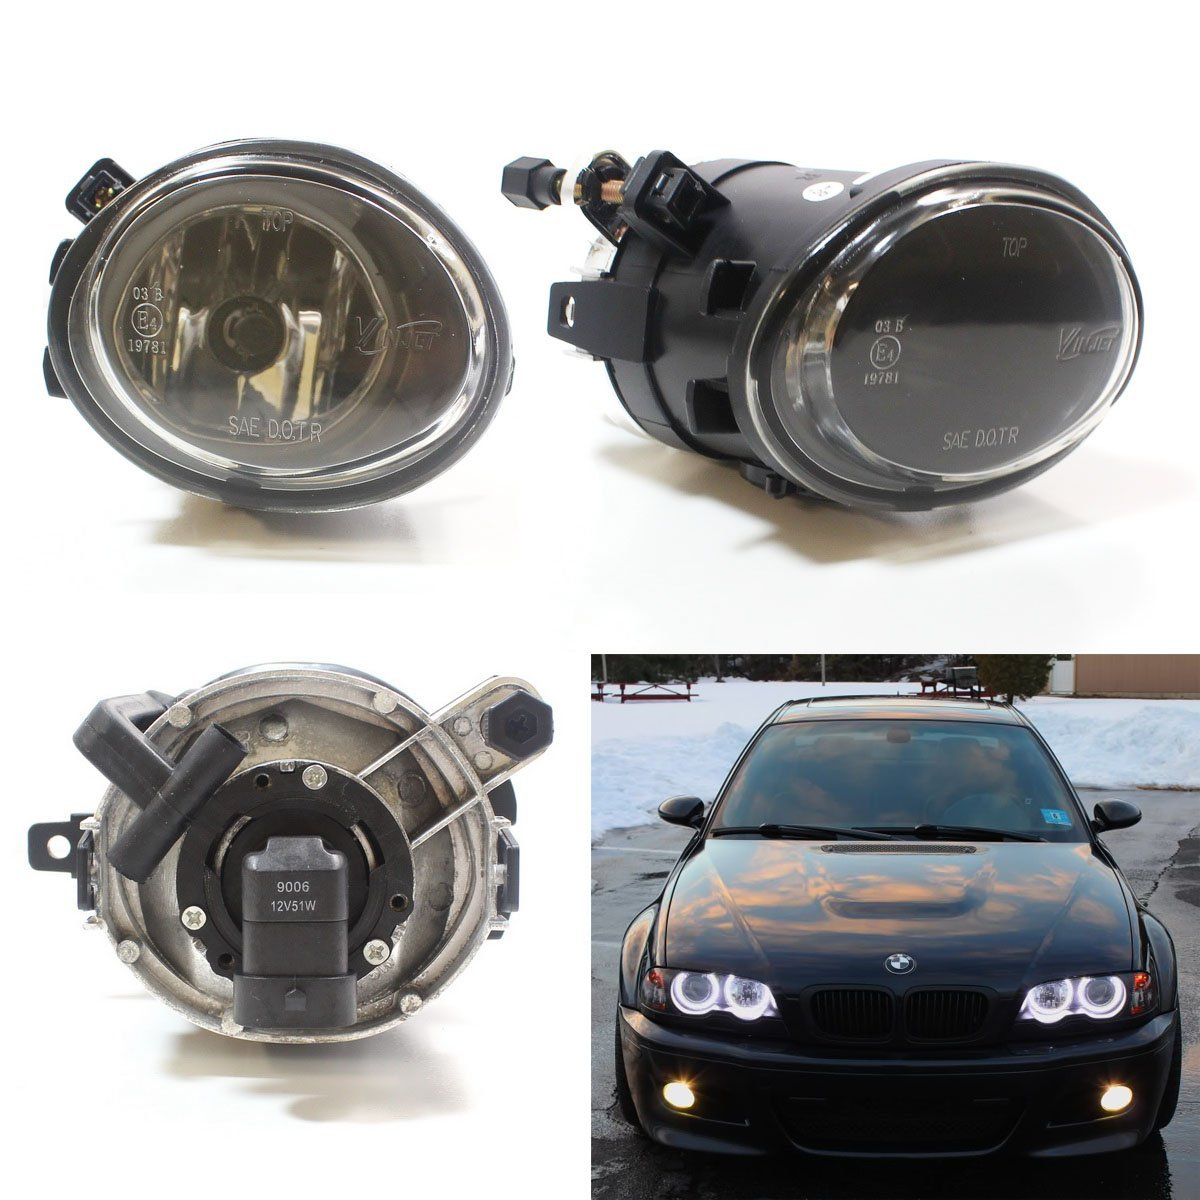 Ijdmtoy One Pair Clear Lens Fog Lights Foglamps W Halogen Bulbs For 2001 2005 Bmw E46 M3 3 Series W M Tech Bumper Or 1999 2002 Bmw E39 M5 Oem 63 17 7 894 018 63 17 7 894 017 Walmart Com Walmart Com